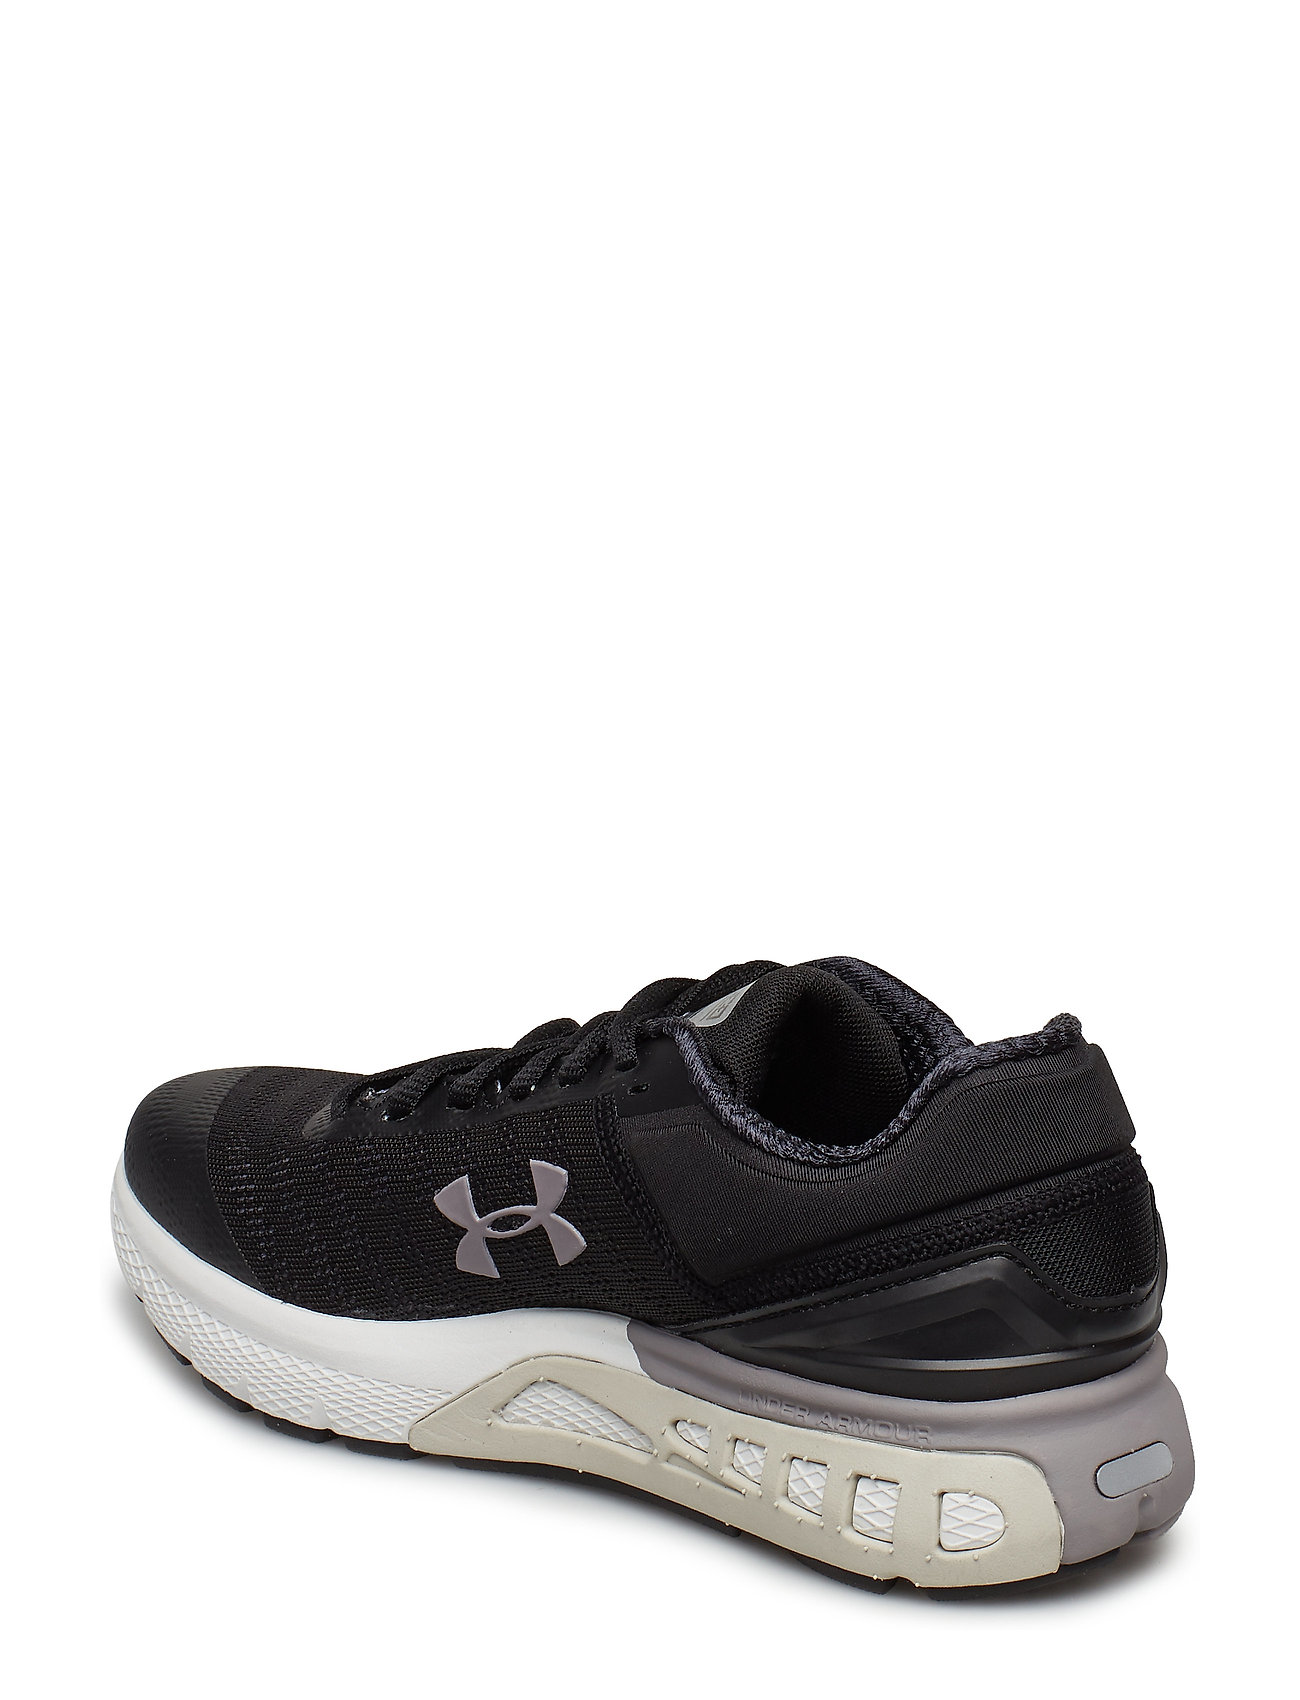 Under Armour Ua W Charged Europa 2 Shoes Sport Shoes Running Shoes Svart Under Armour